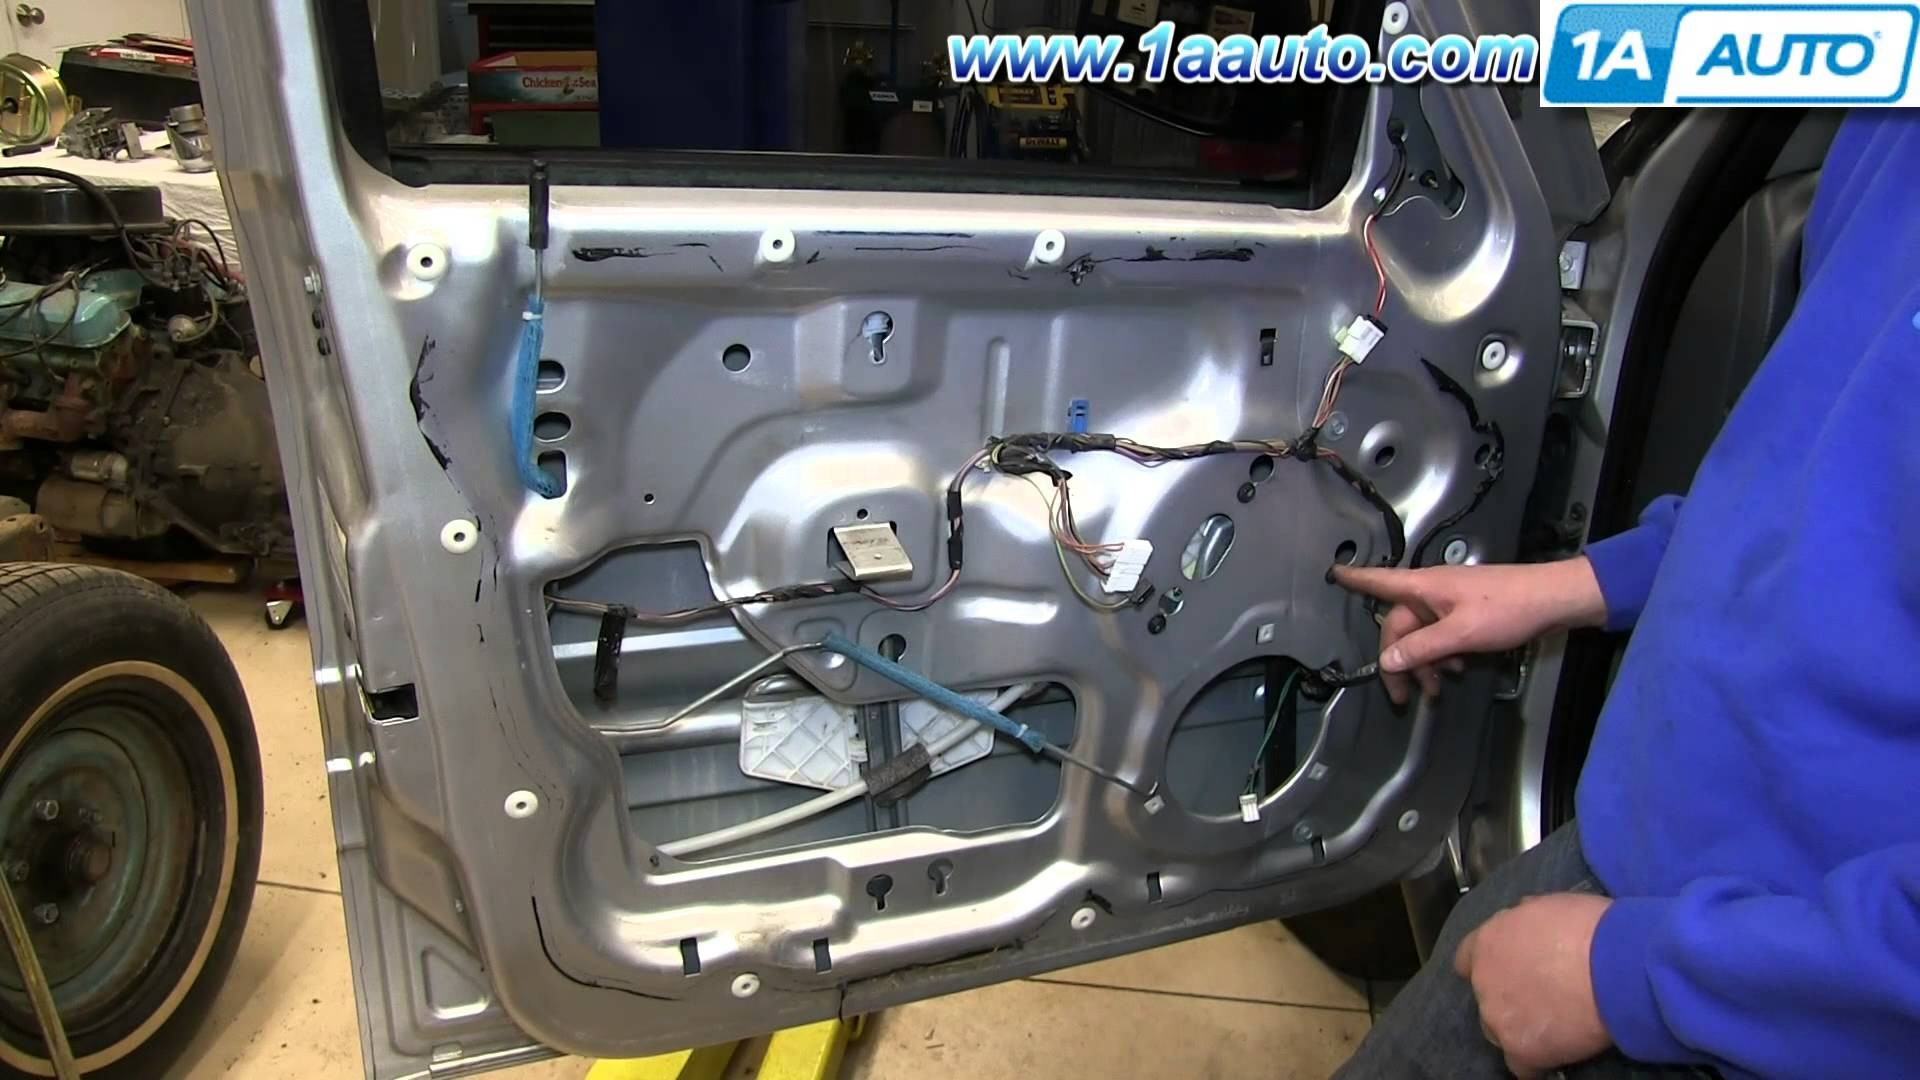 1999 Jeep Grand Cherokee Parts Diagram How To Install Replace Front Rh  Detoxicrecenze Com 1999 Jeep